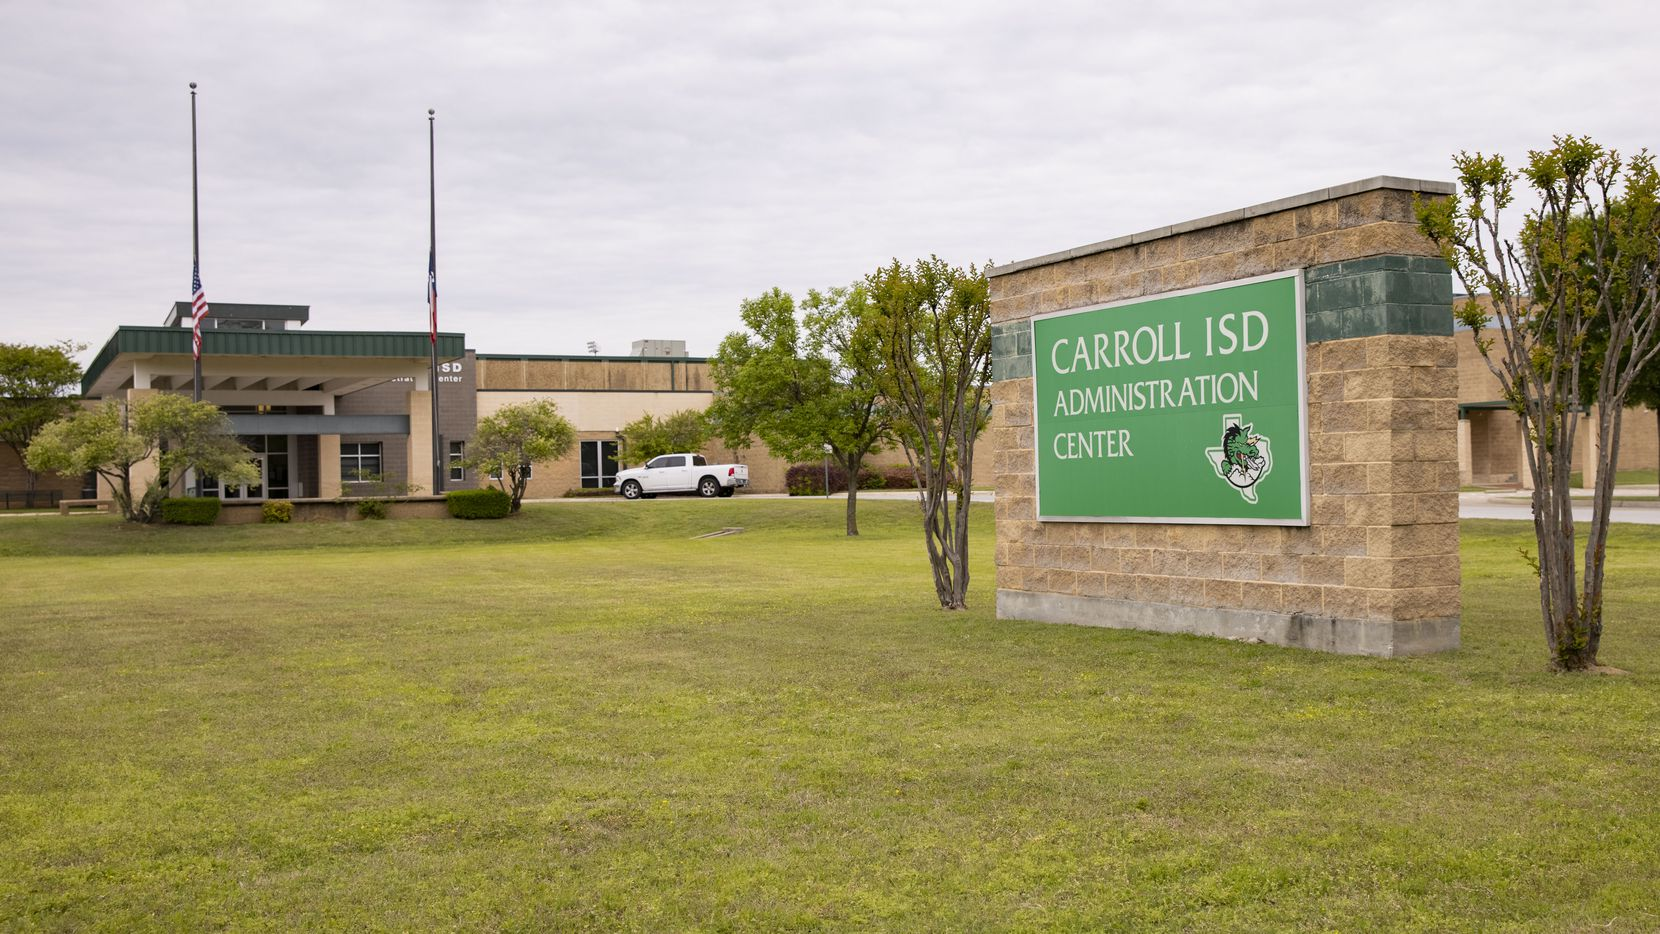 Carroll ISD has hired two new administrators. (Juan Figueroa / The Dallas Morning News)